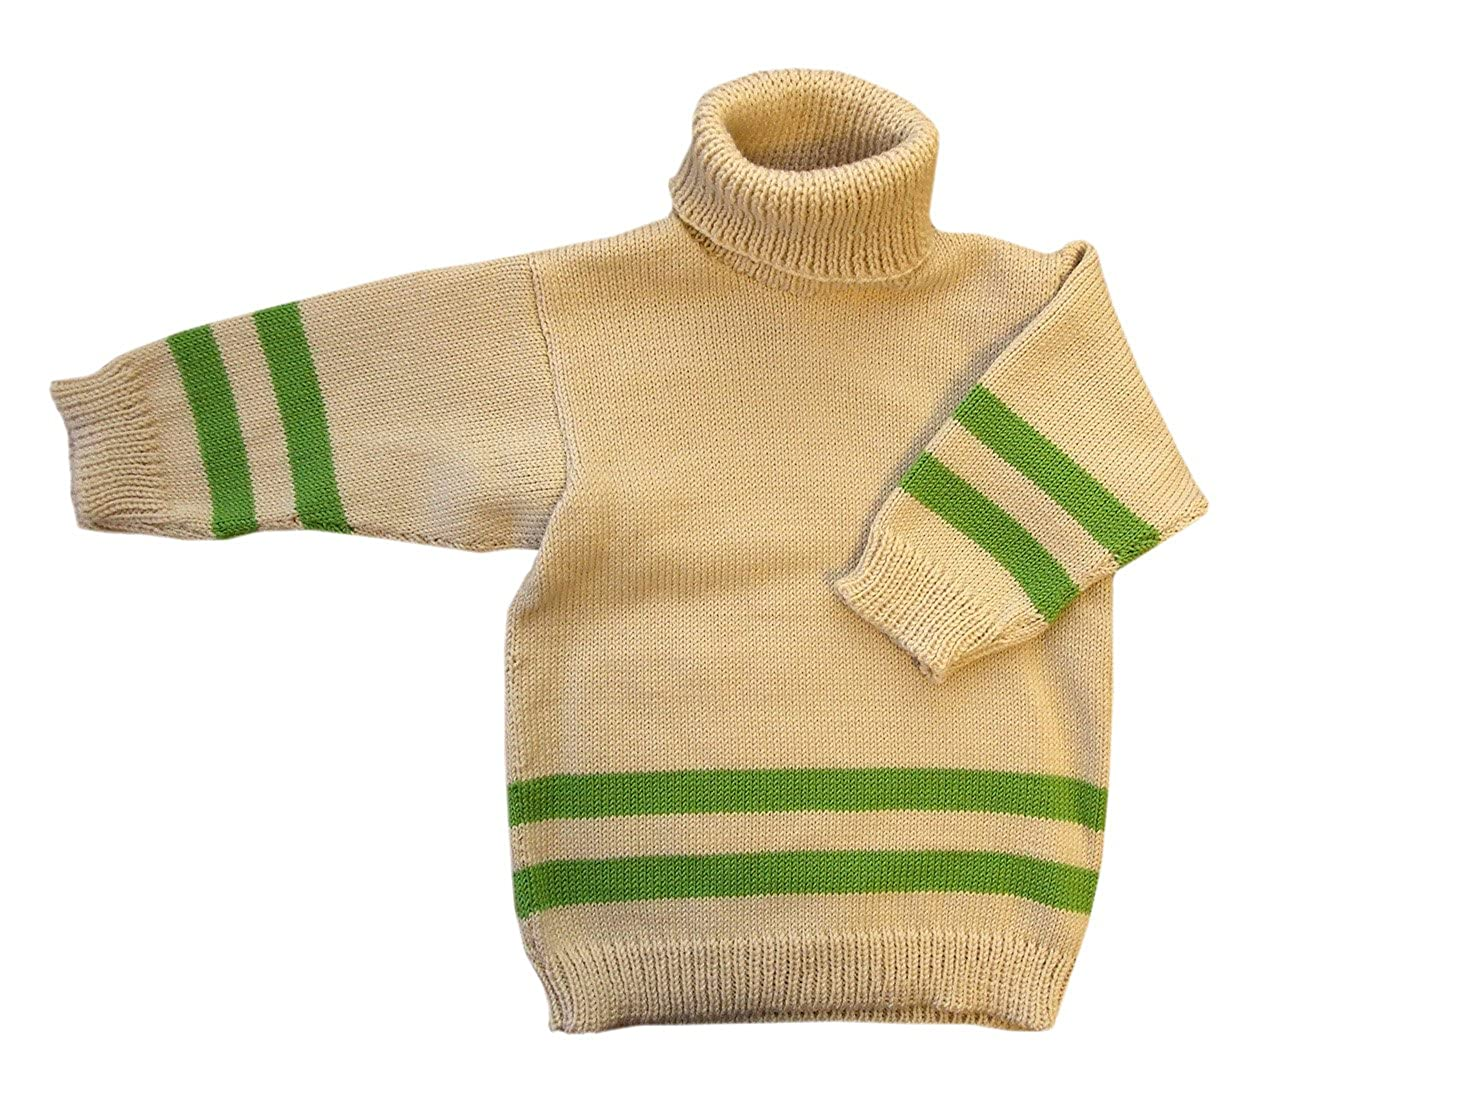 Merino Wool Knitted Polo Neck Sweater Turtleneck